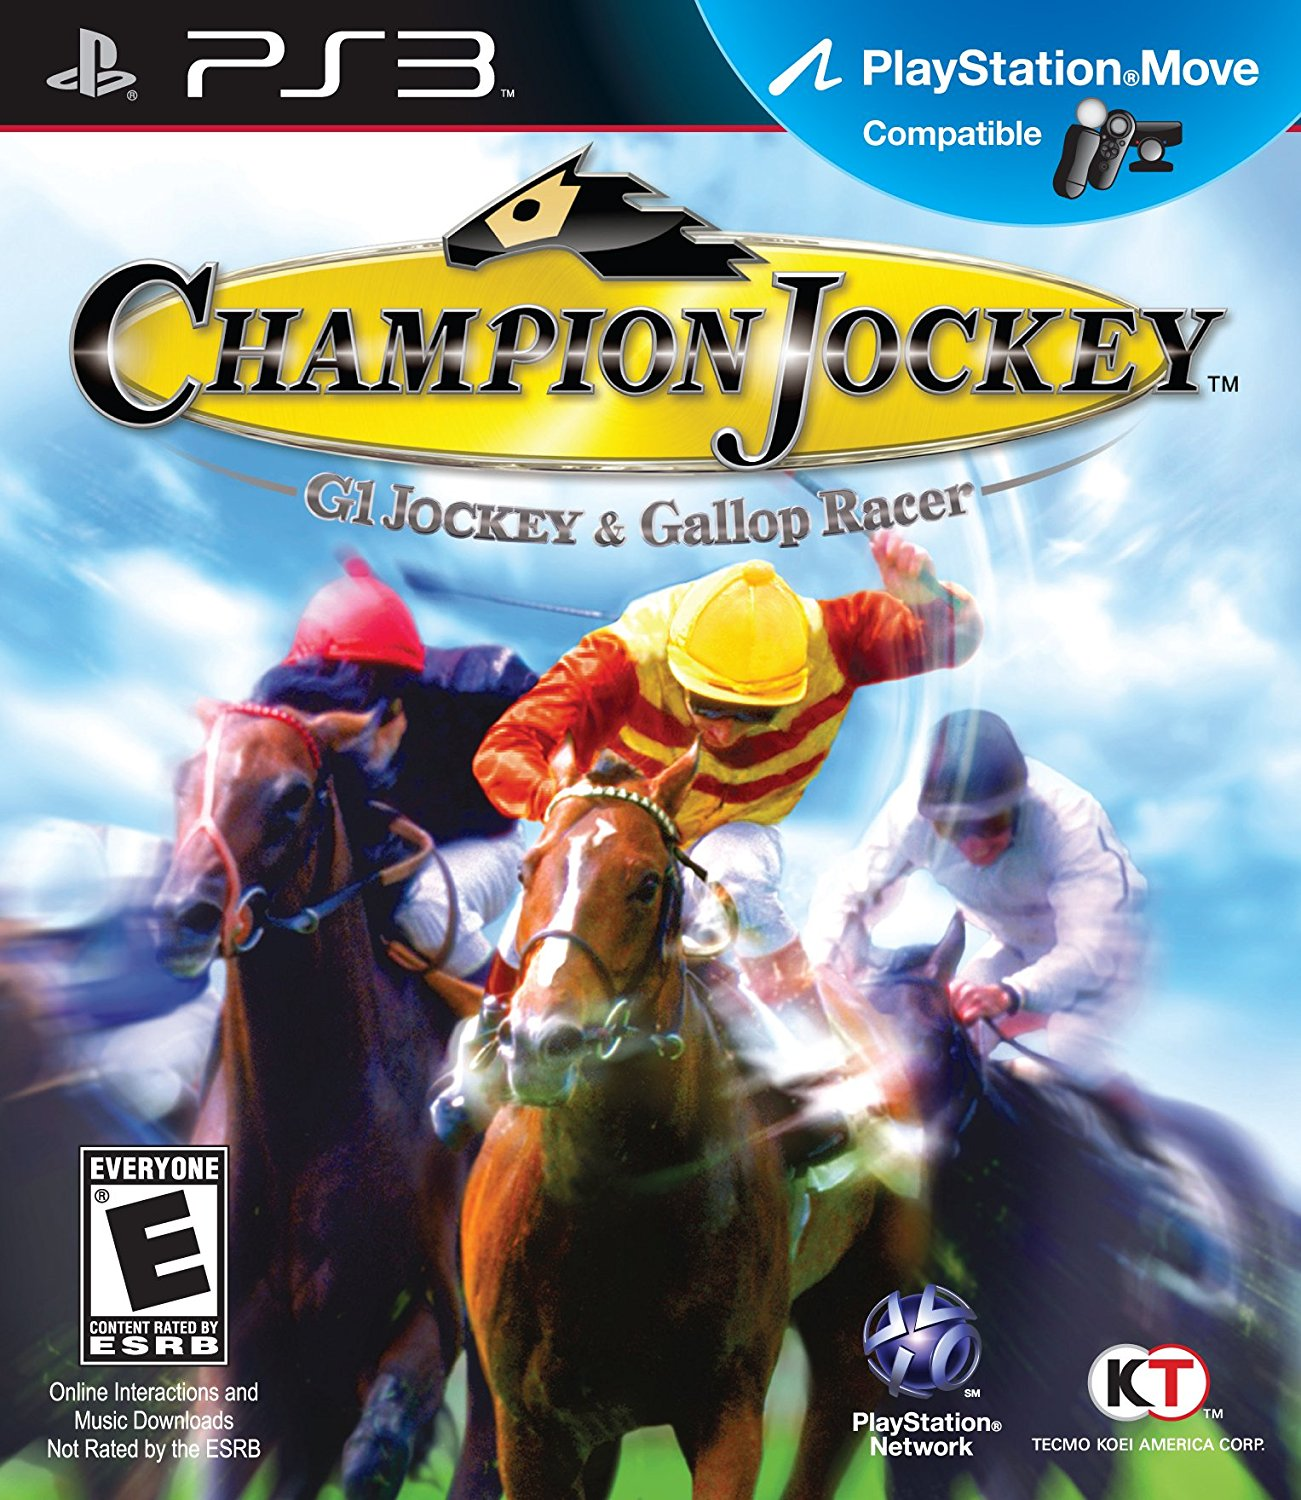 Champion Jockey G1 Jockey and Gallop